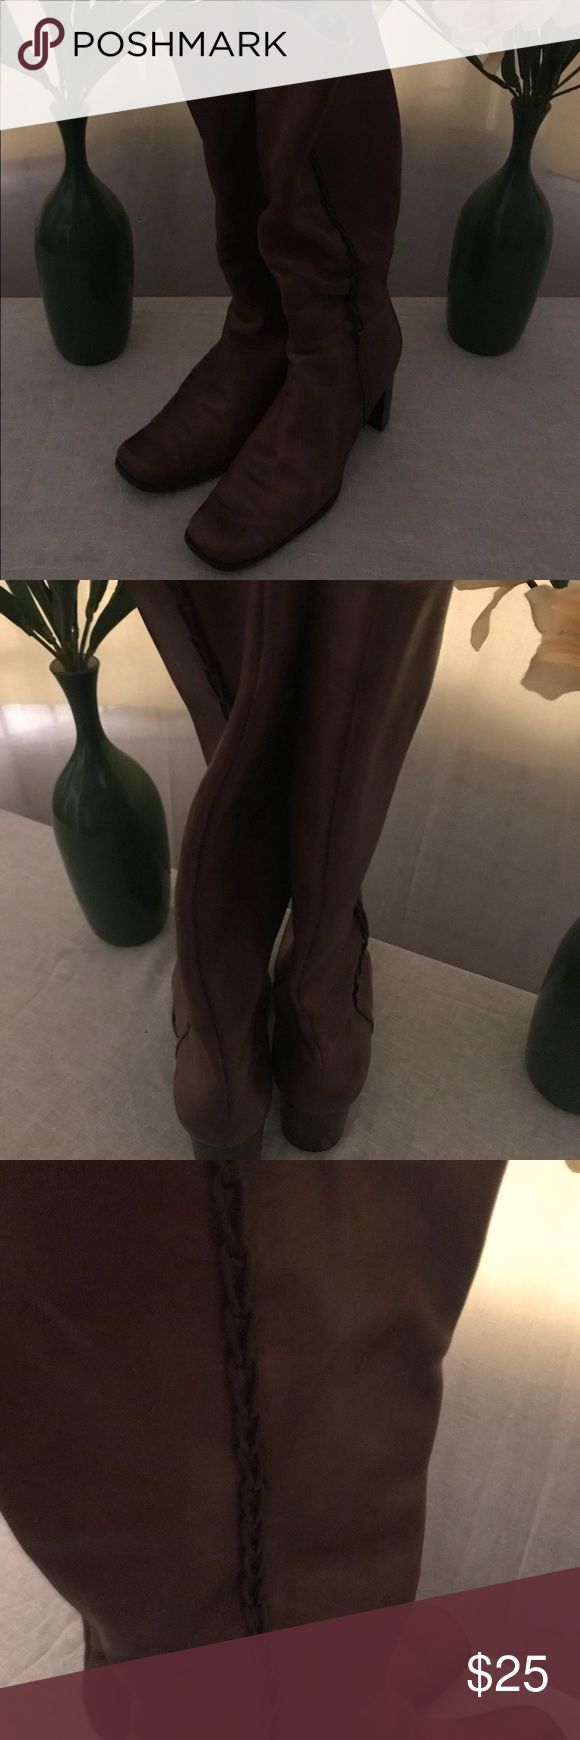 💞SALE💞St John's Bay brown rider boots St John's Bay Brown rider boots, material worn in the inside, other wise good condition St. John's Bay Shoes Heeled Boots